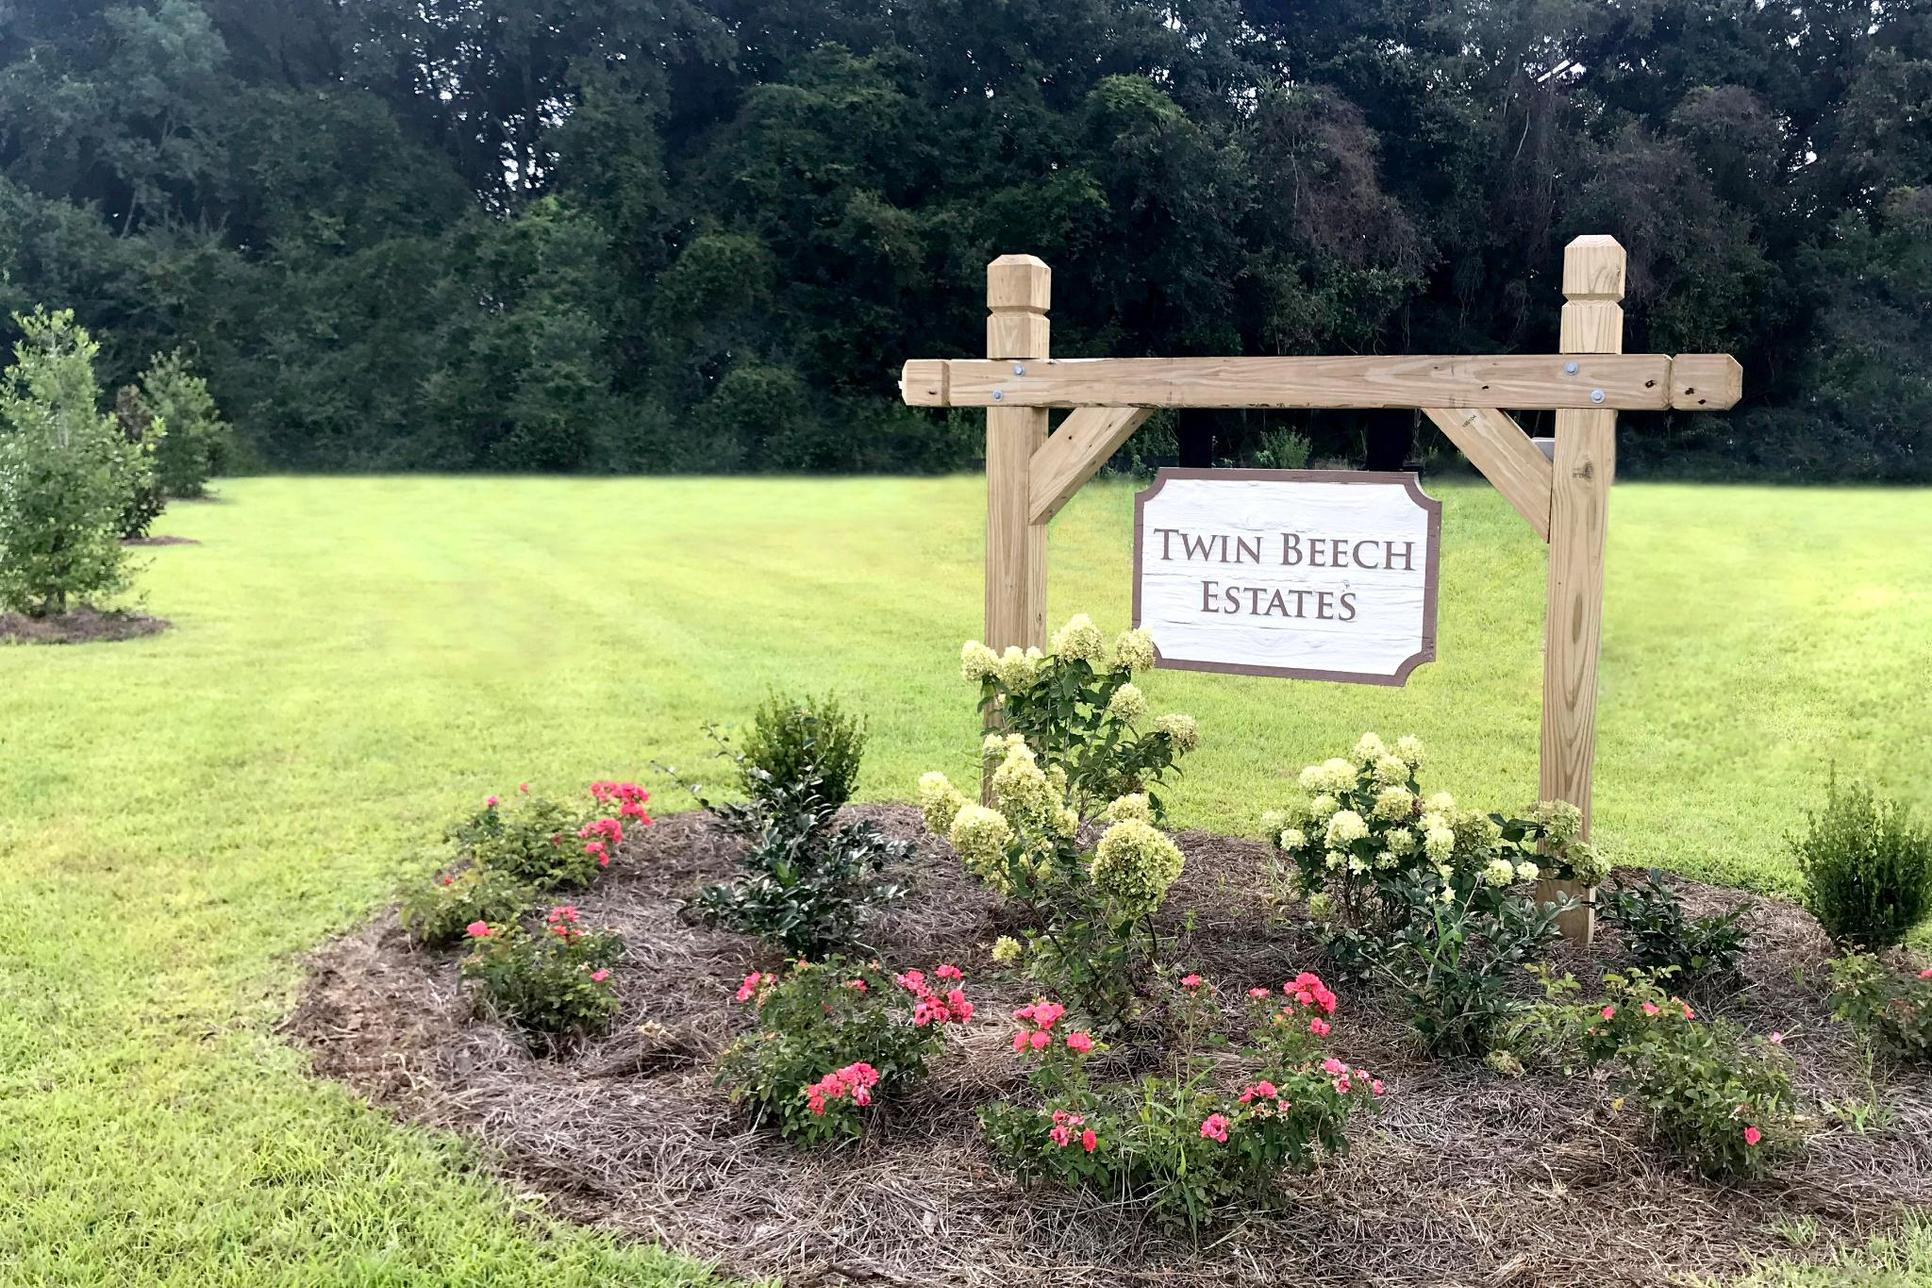 Entrance sign - Twin Beech Estates - Fairhope, AL:Twin Beech Estates - Fairhope, AL